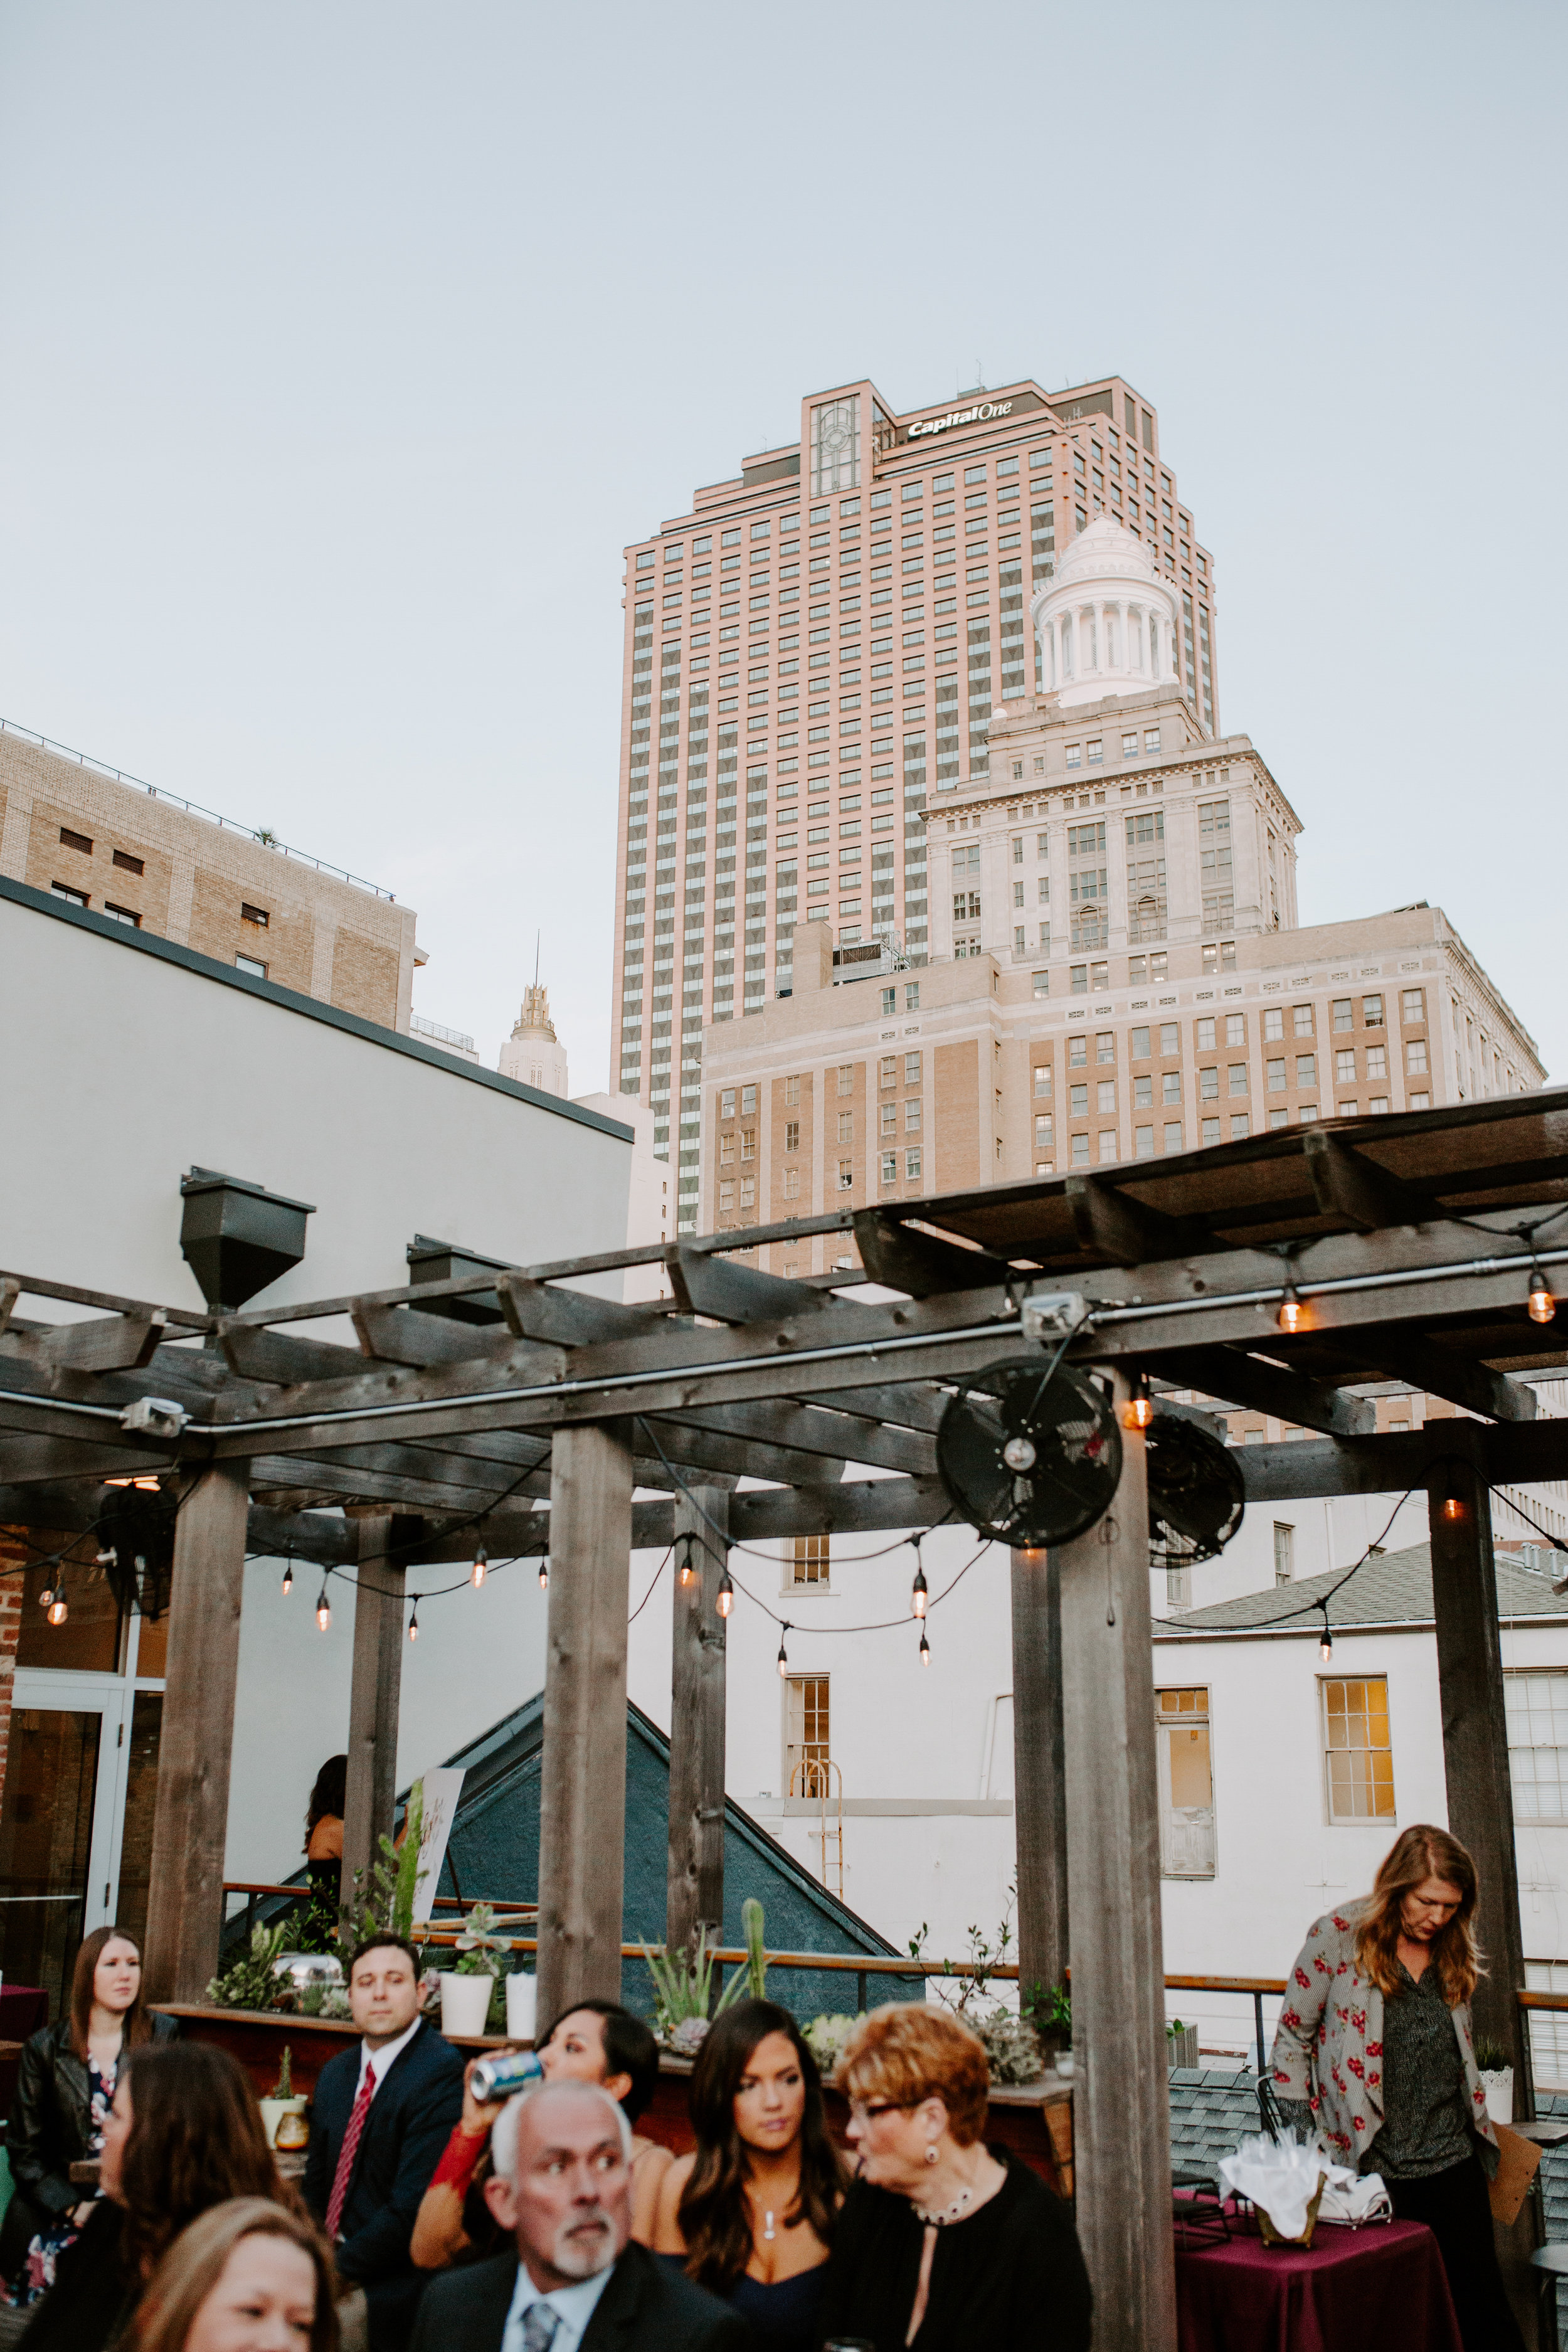 Catahoula Hotel Rooftop Wedding Ceremony New Orleans Wedding Photographer Ashley Biltz Photography31.jpg